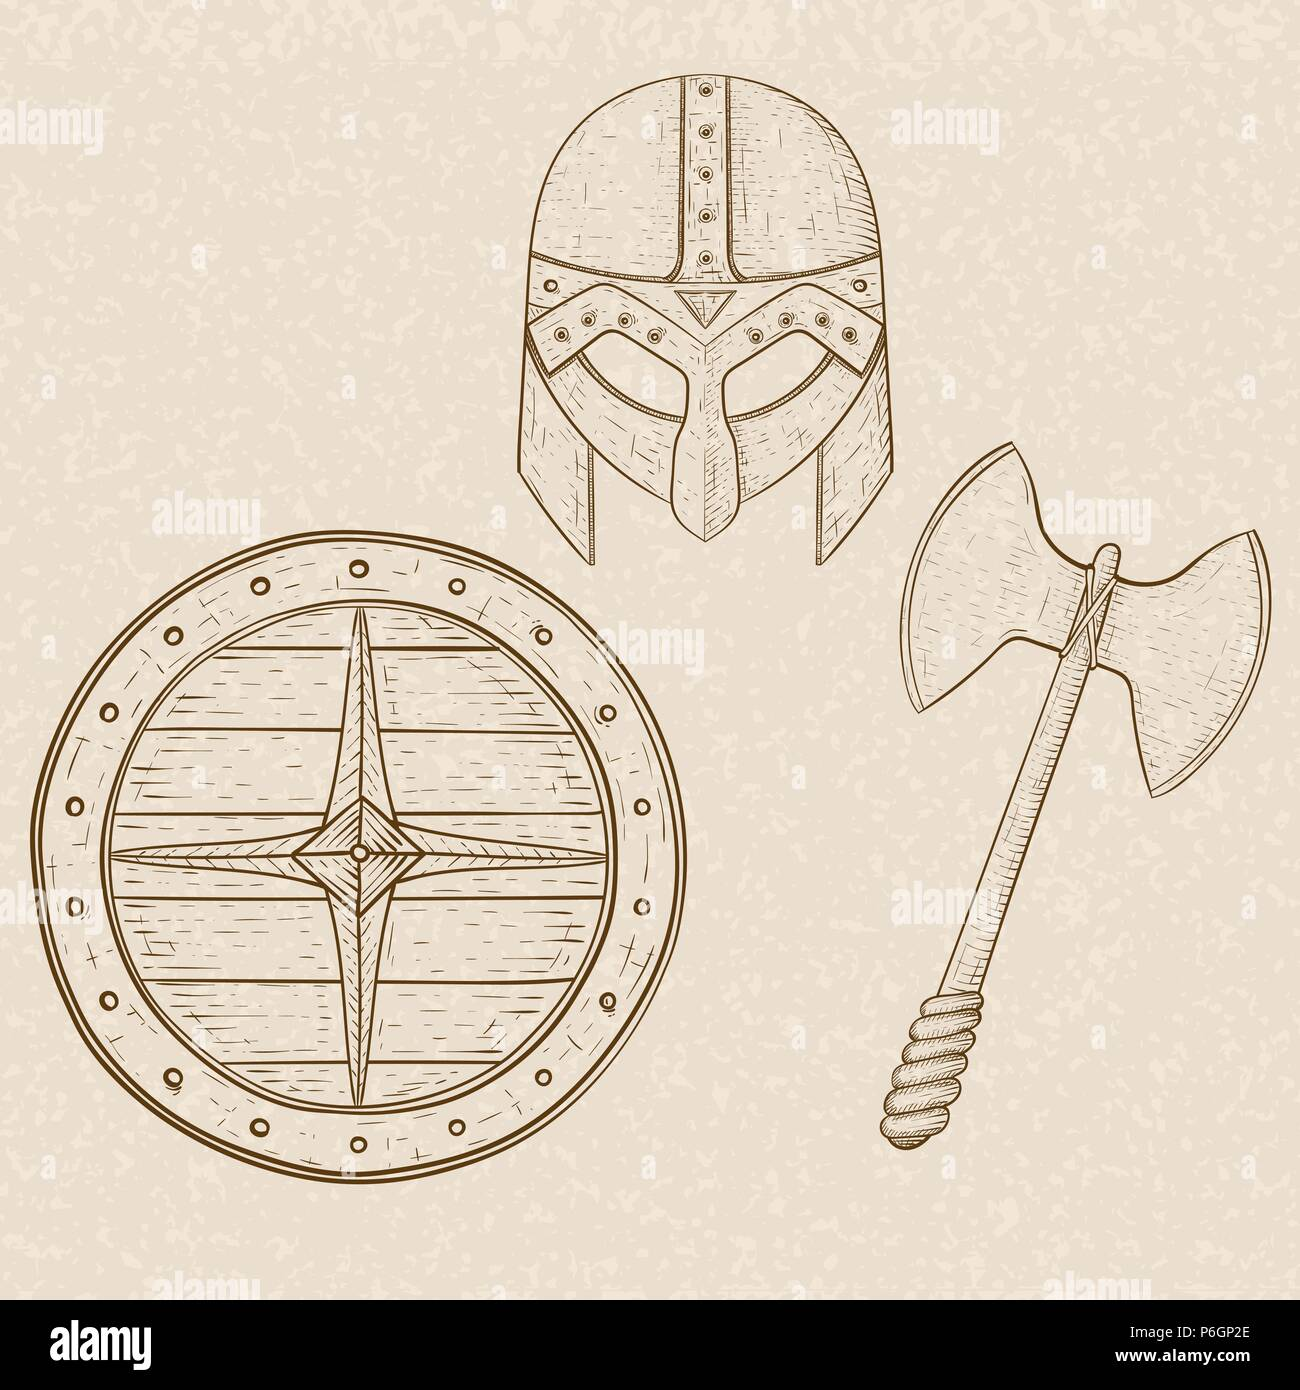 Viking armor set - helmet, shield and axe. Hand drawn sketch on beige background - Stock Image